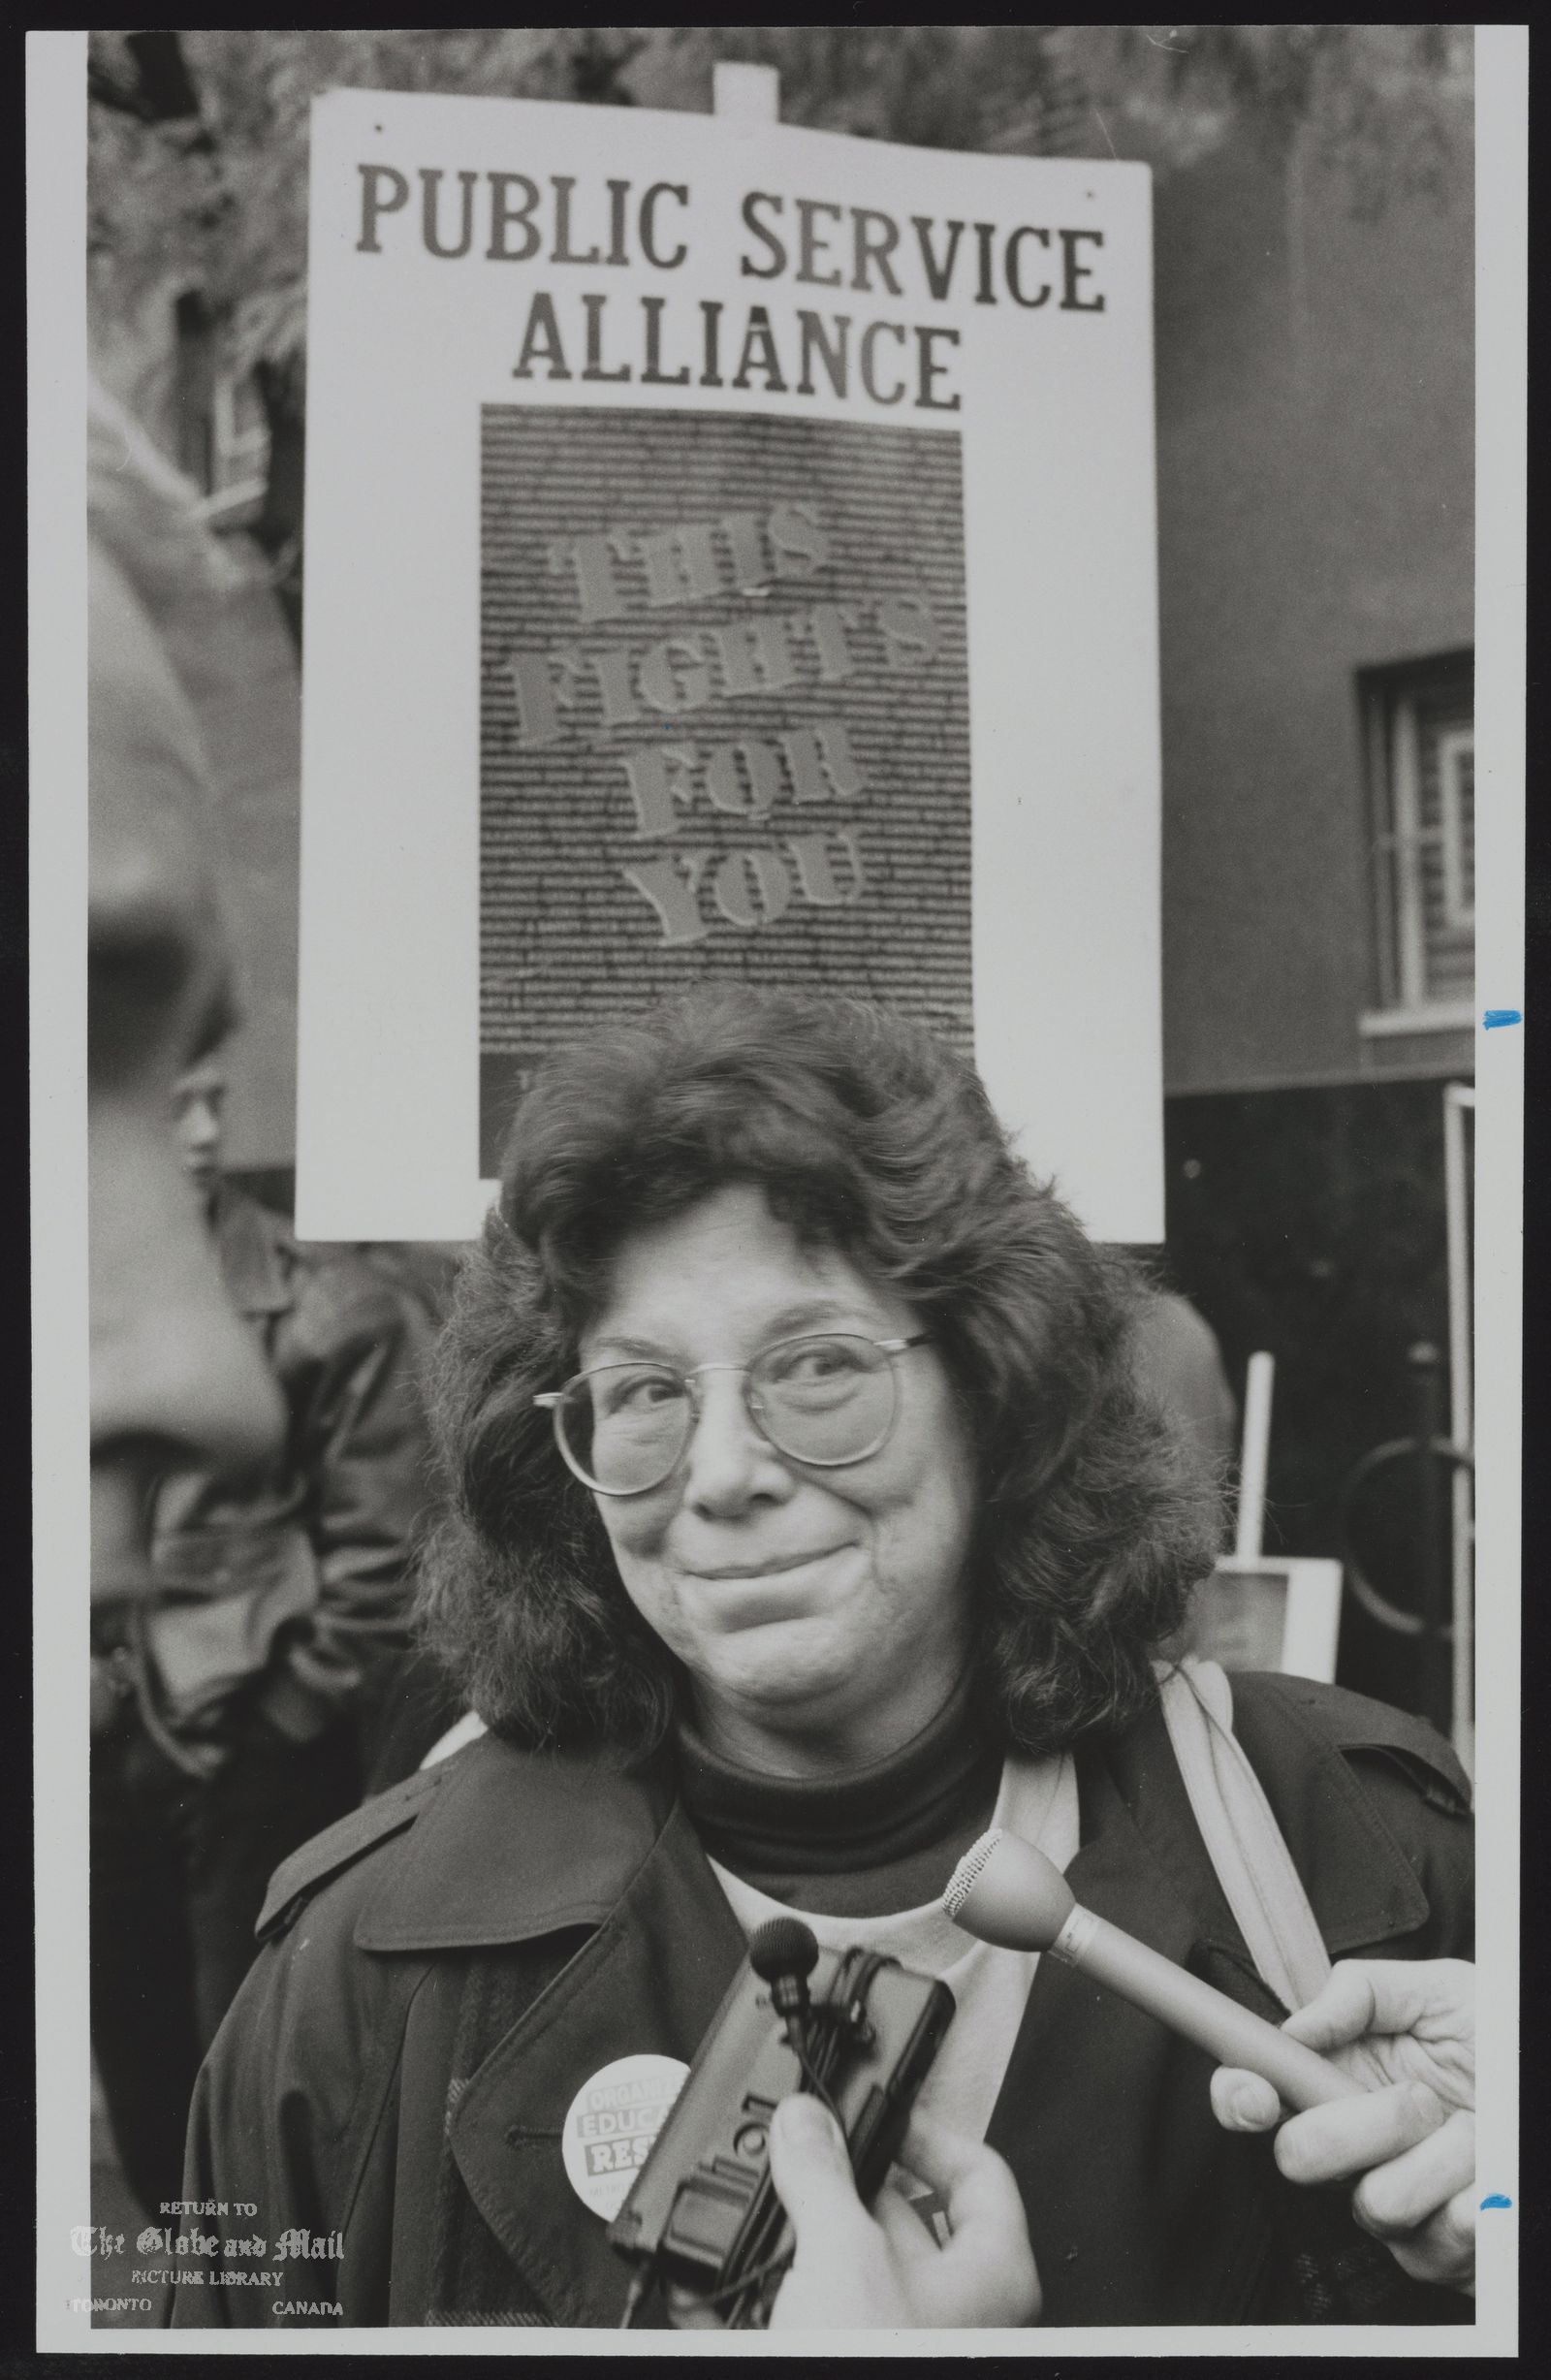 LINDA TORNEY LABOUR LEADER TORNEY SPEAKS AT A RALLY IN TORONTO, A WARNING FOR THE DAYS OF ACTION PROTEST.